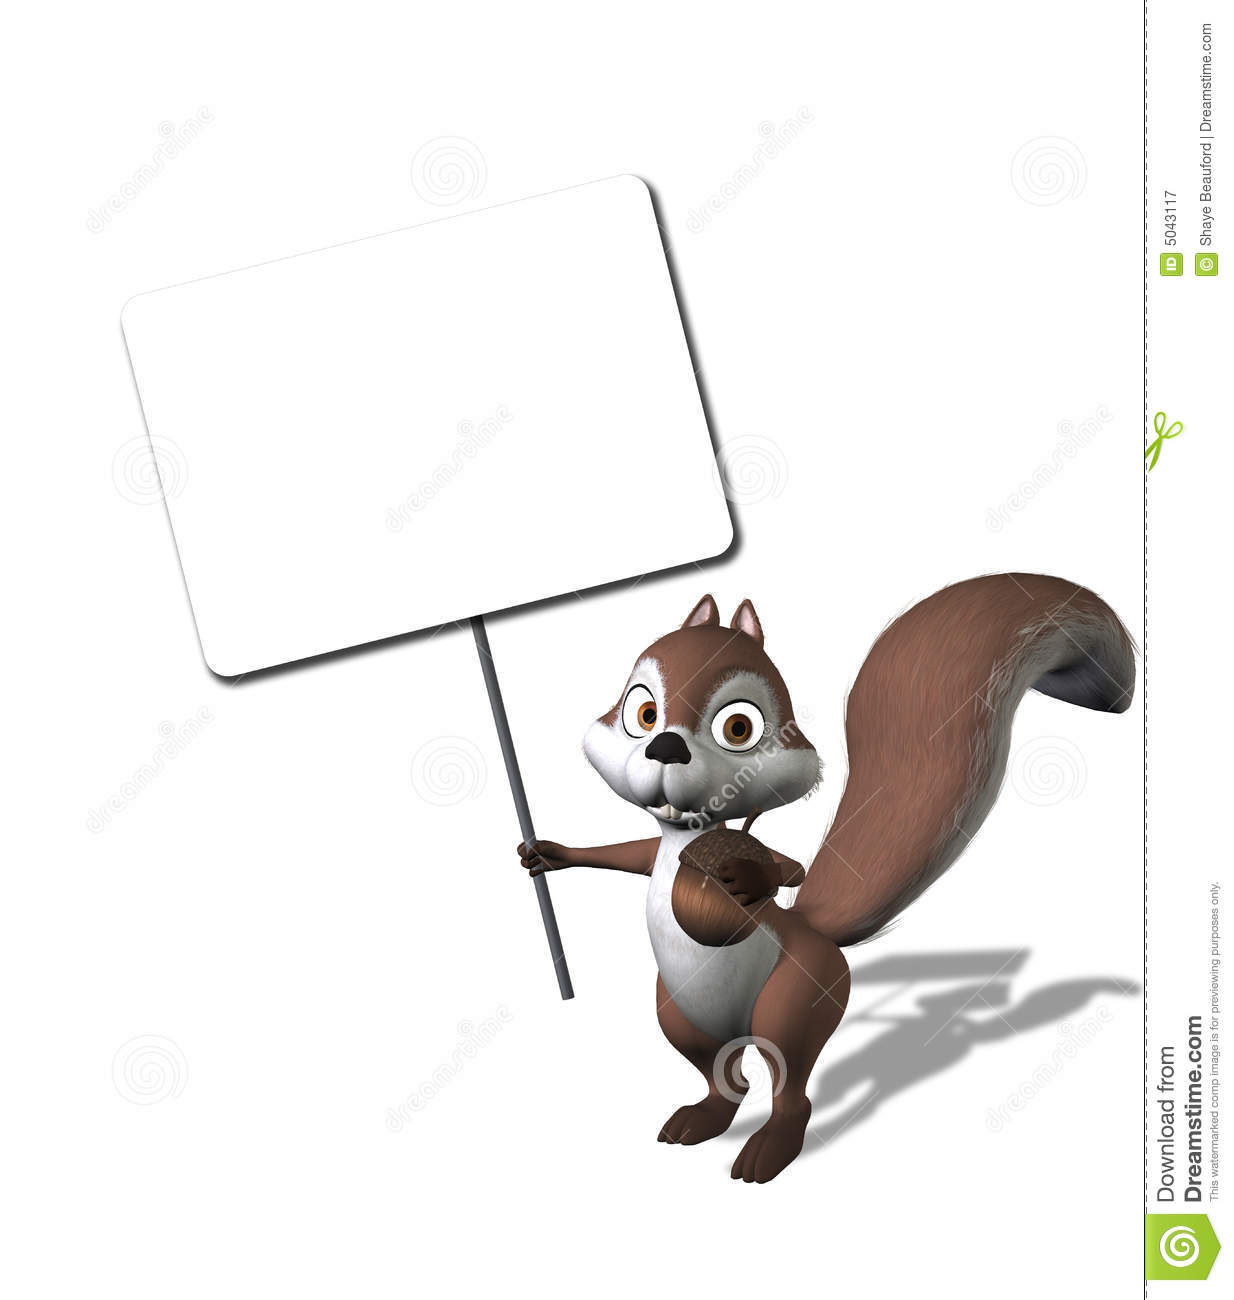 Cartoon Squirrel Holding a Blank Sign